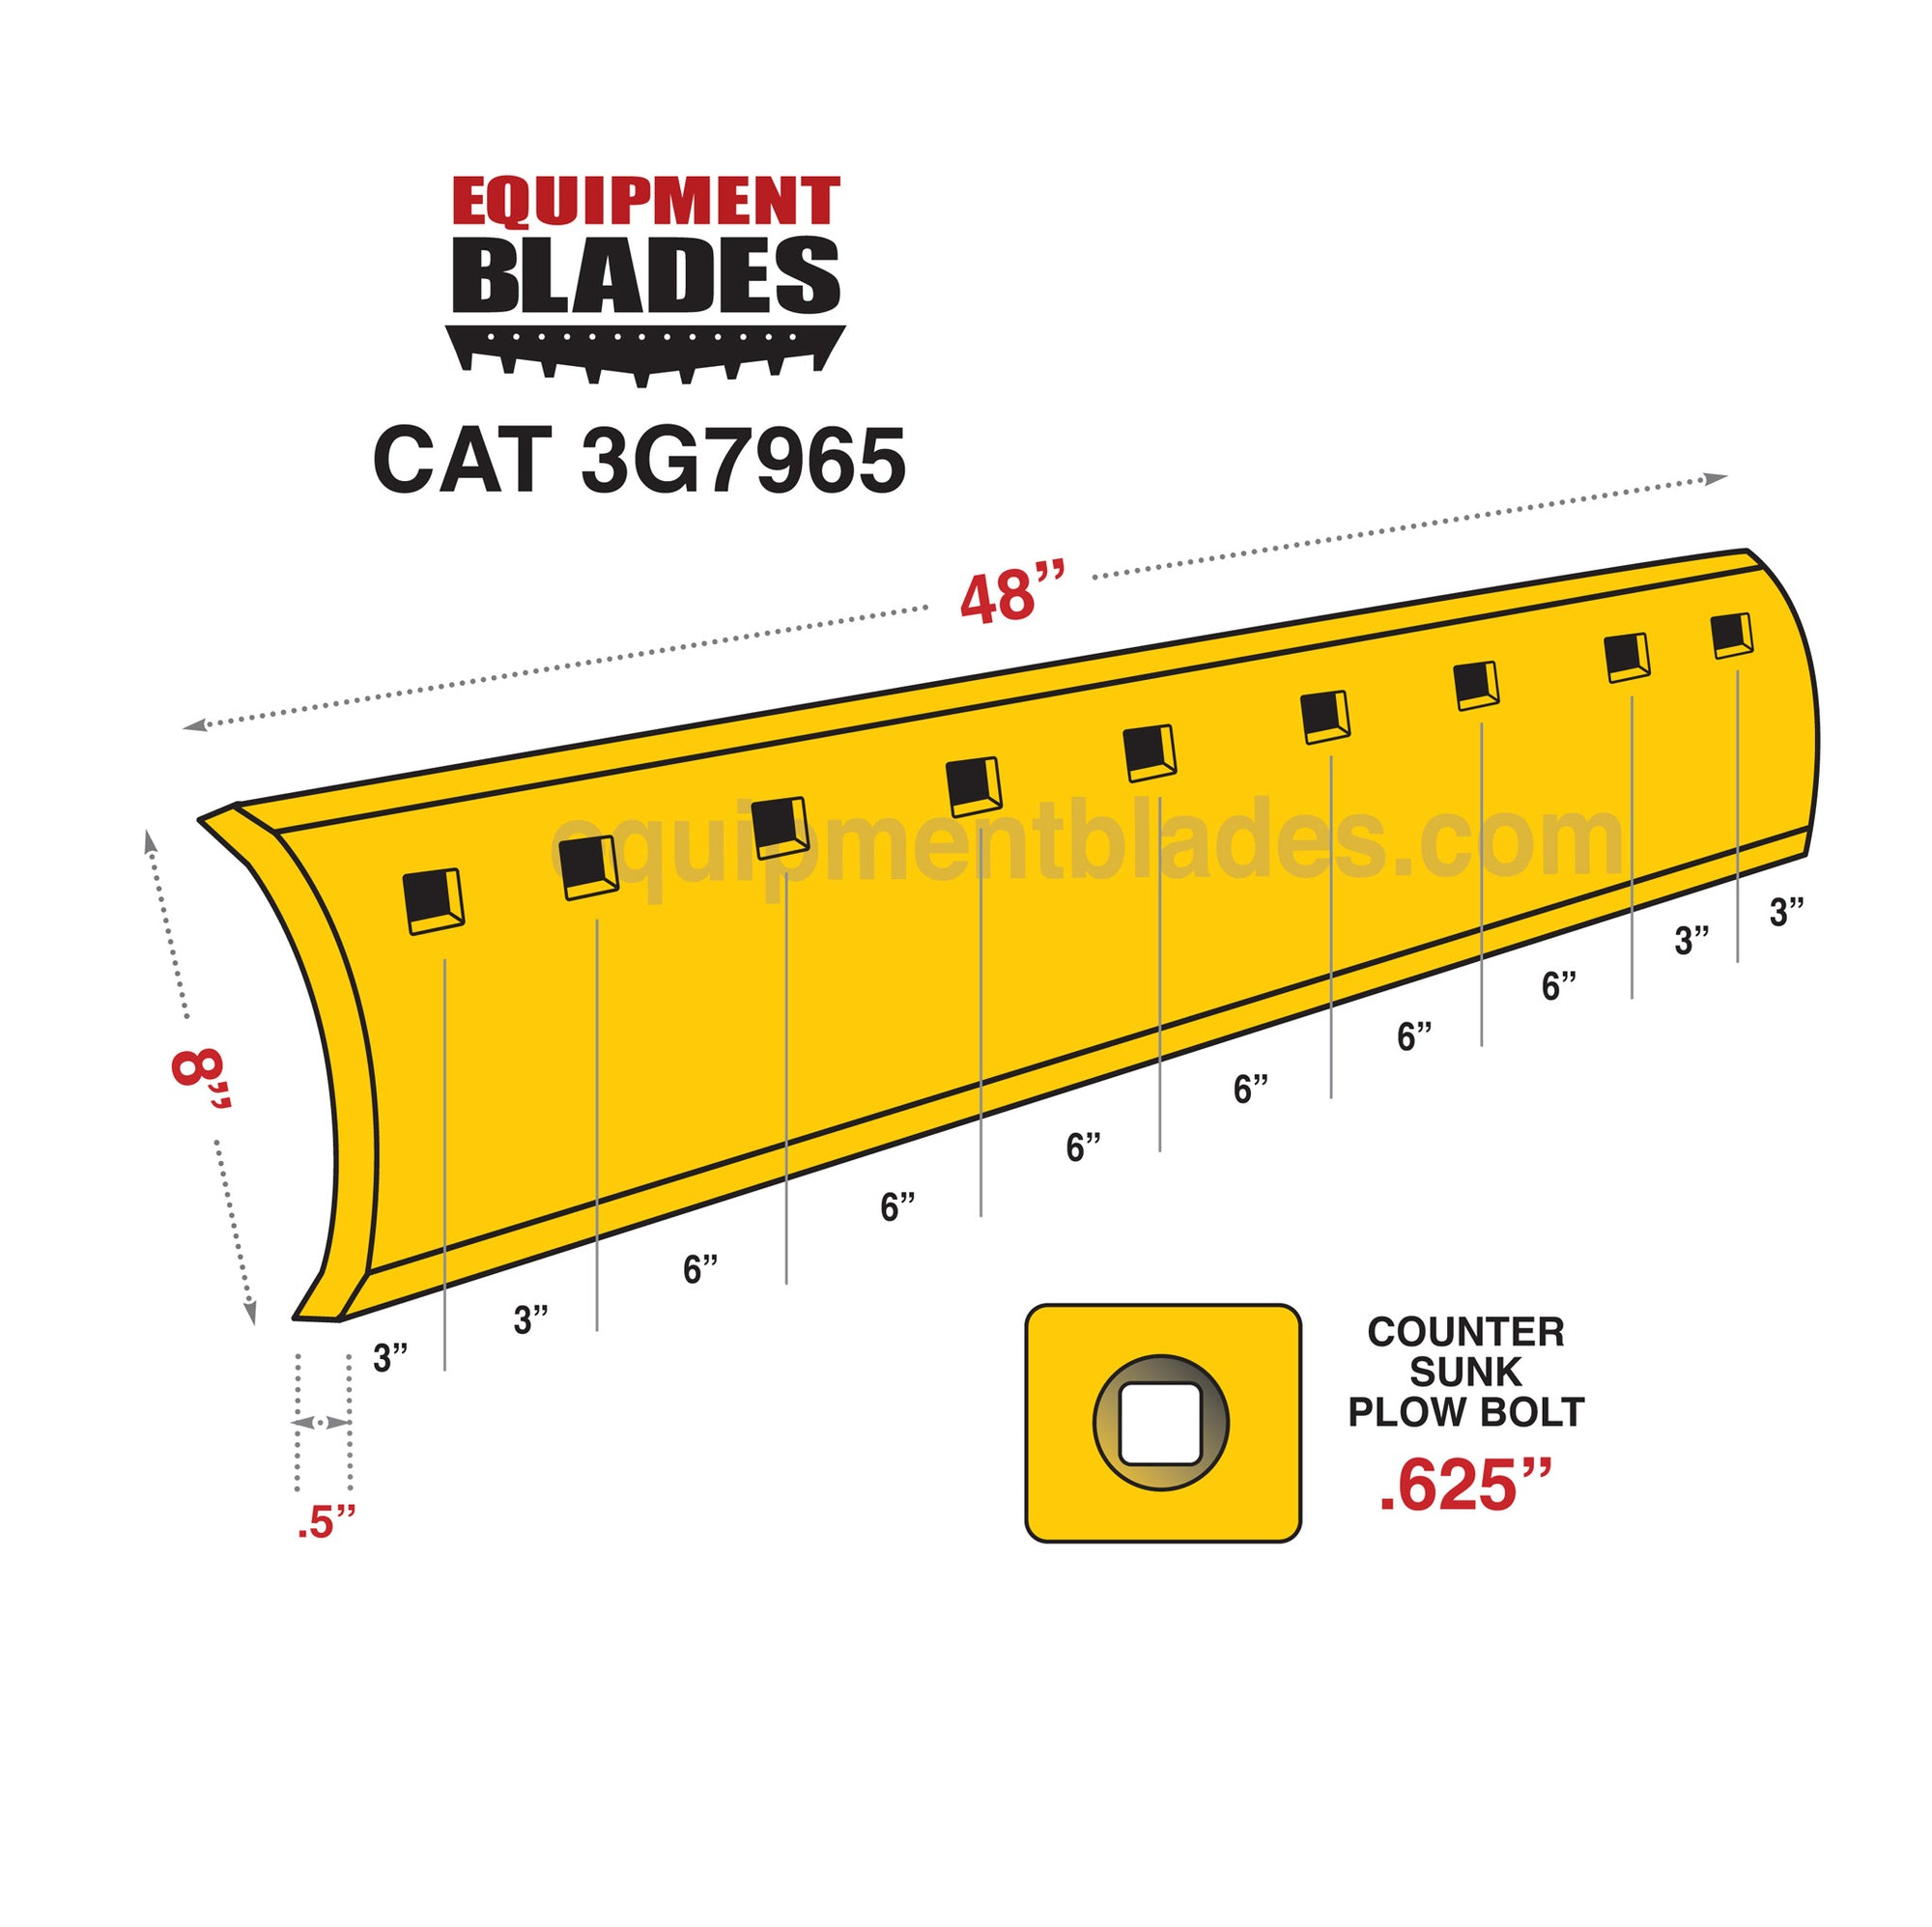 CAT 3G7965-Equipment Blades Inc-Equipment Blades Inc